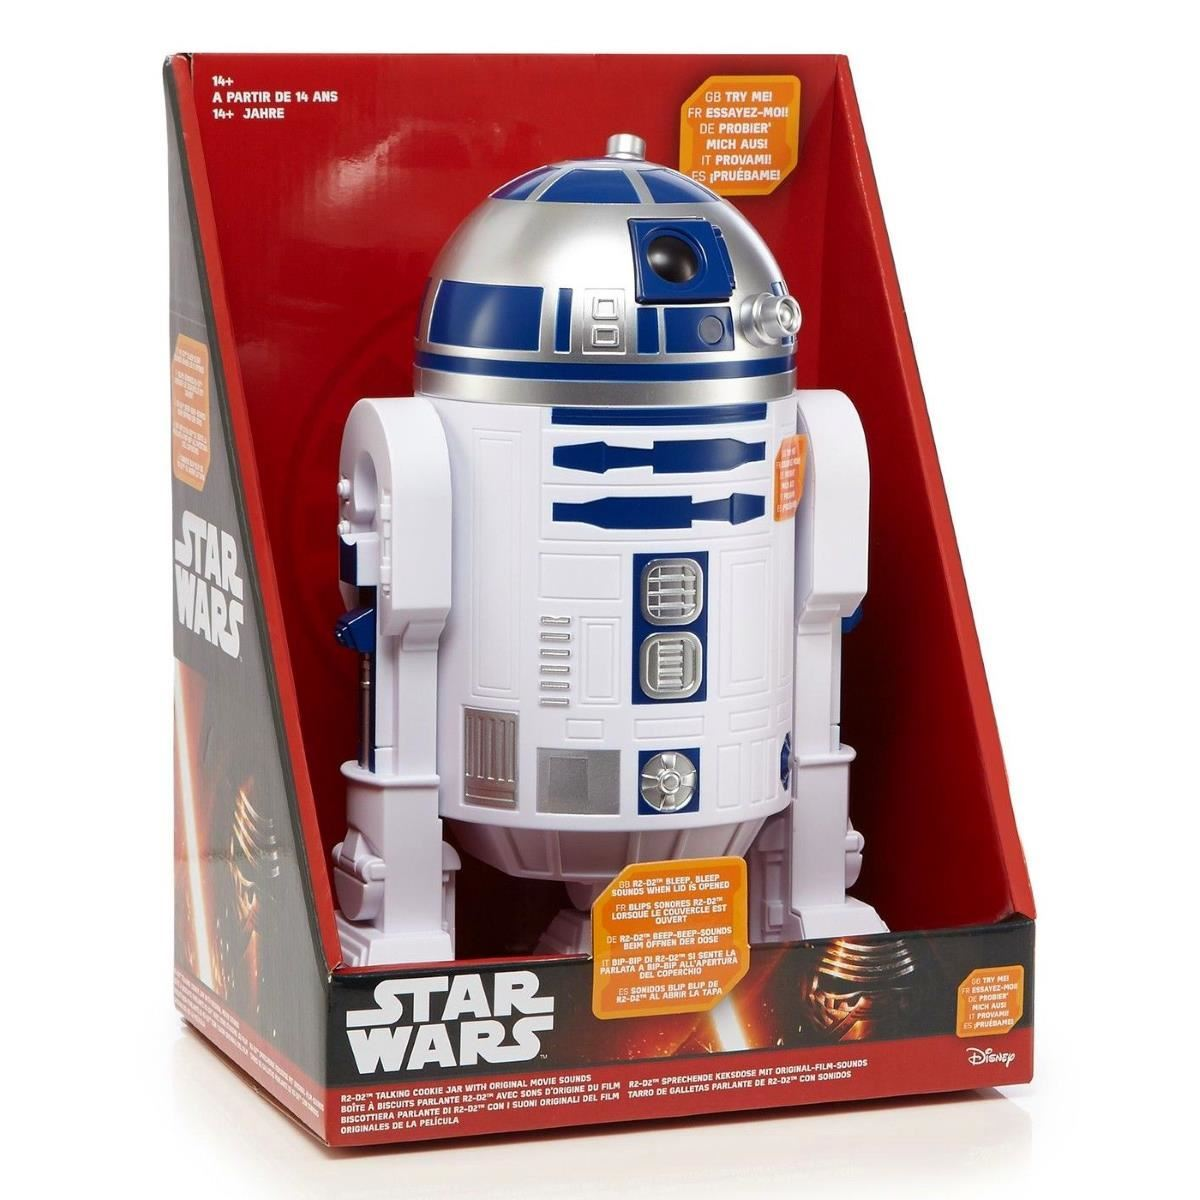 Star Wars Cookie Jars Star Wars R2 D2 Talking Cookie Jar With Lights And Sounds